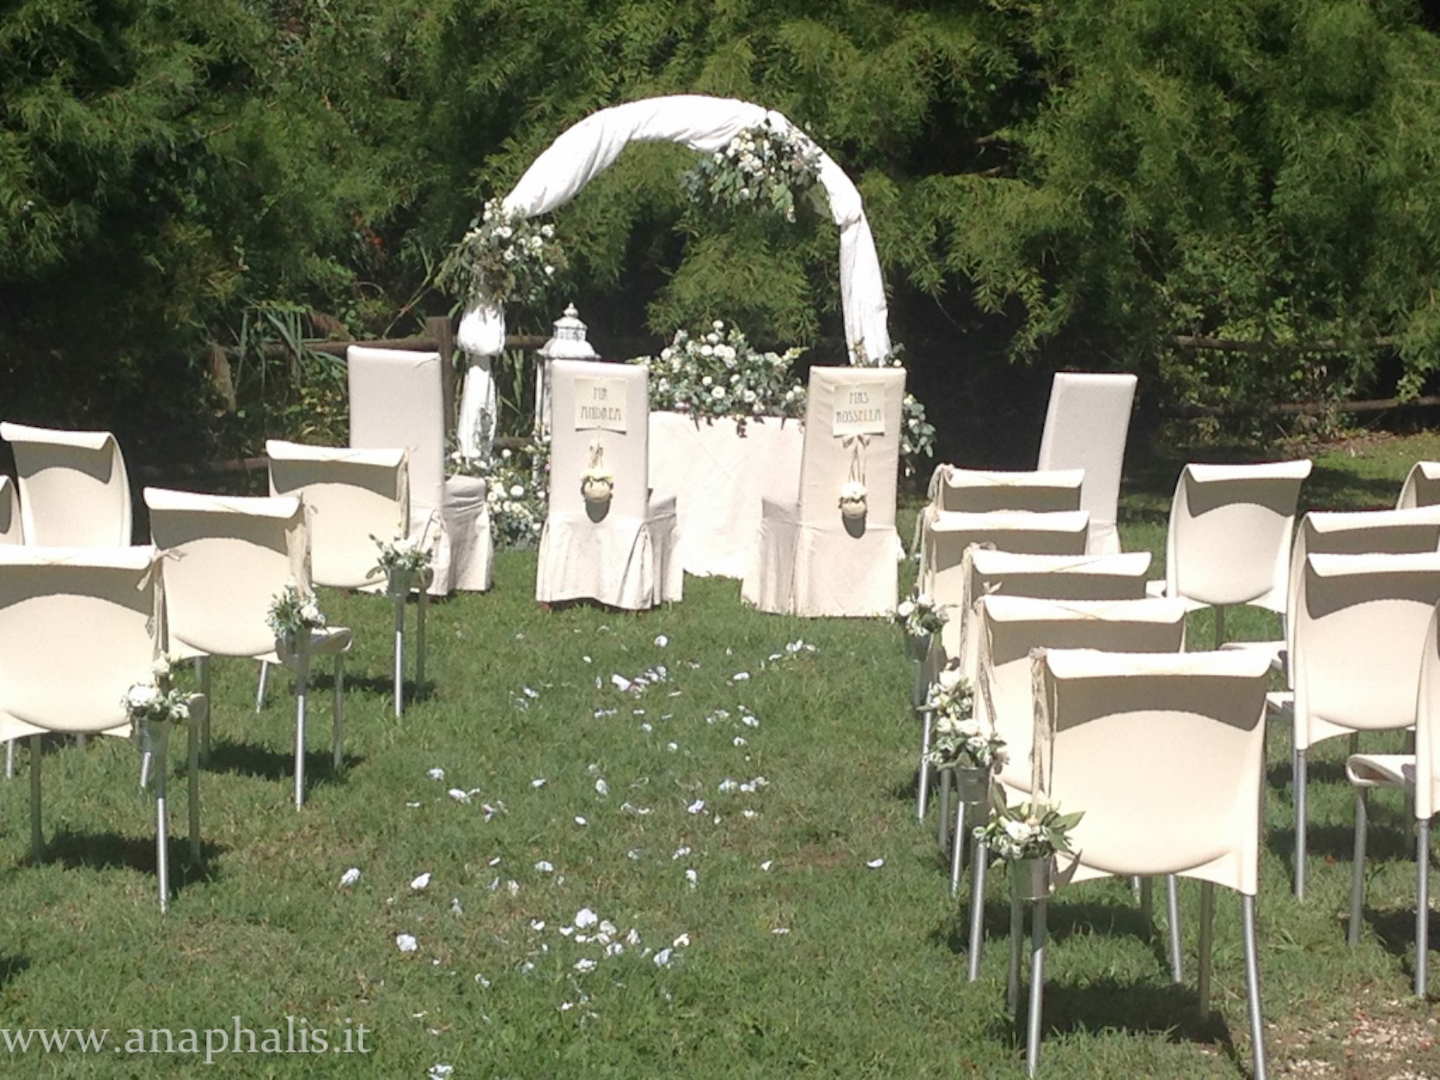 Matrimonio Country Chic Pavia : Matrimonio country chic in bianco e verde fioreria